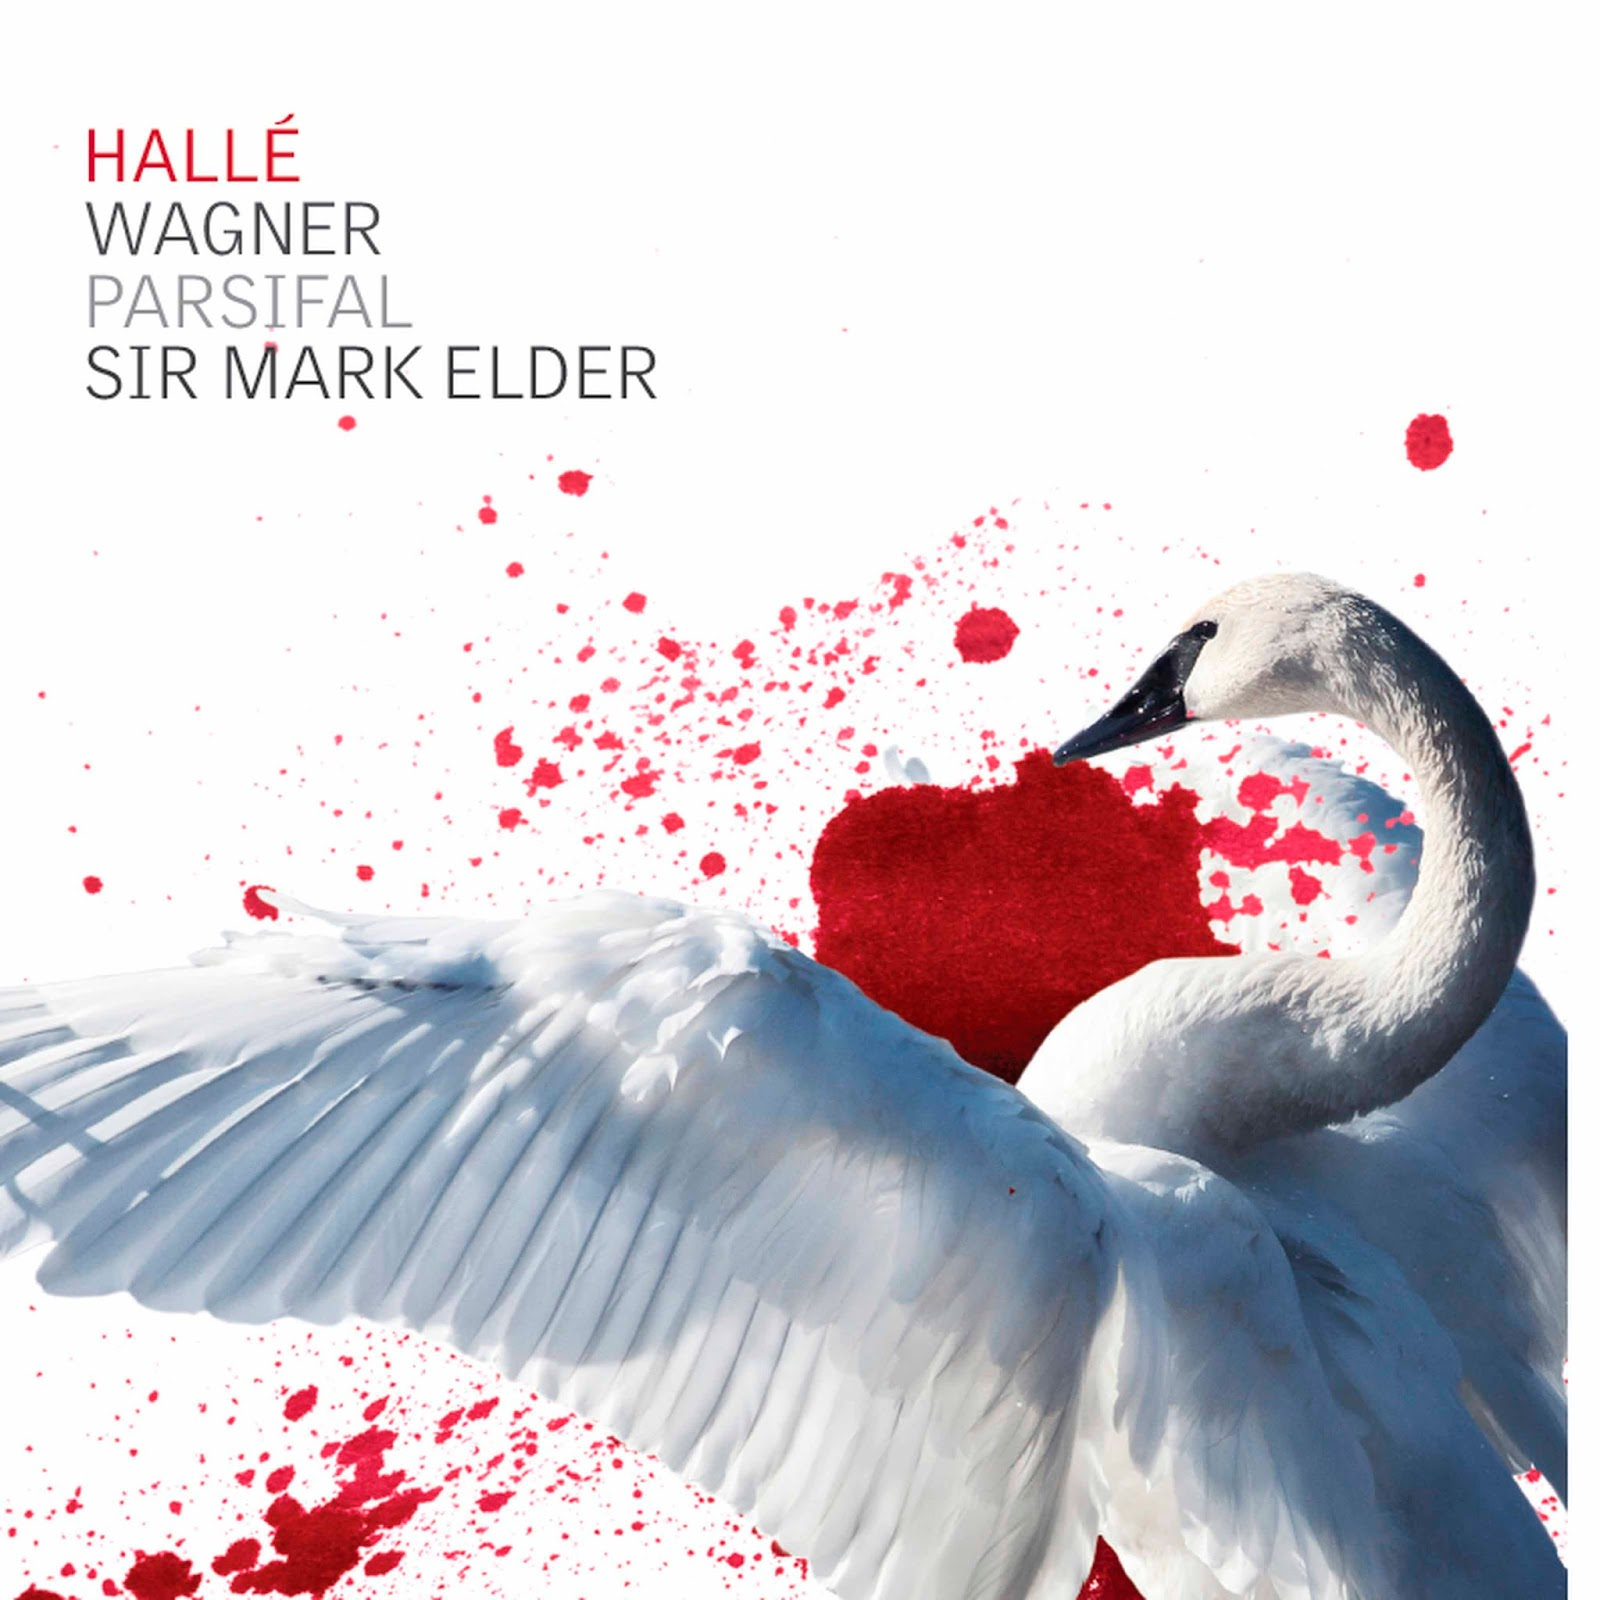 IN REVIEW: Richard Wagner - PARSIFAL (Hallé CD HLD 7539)